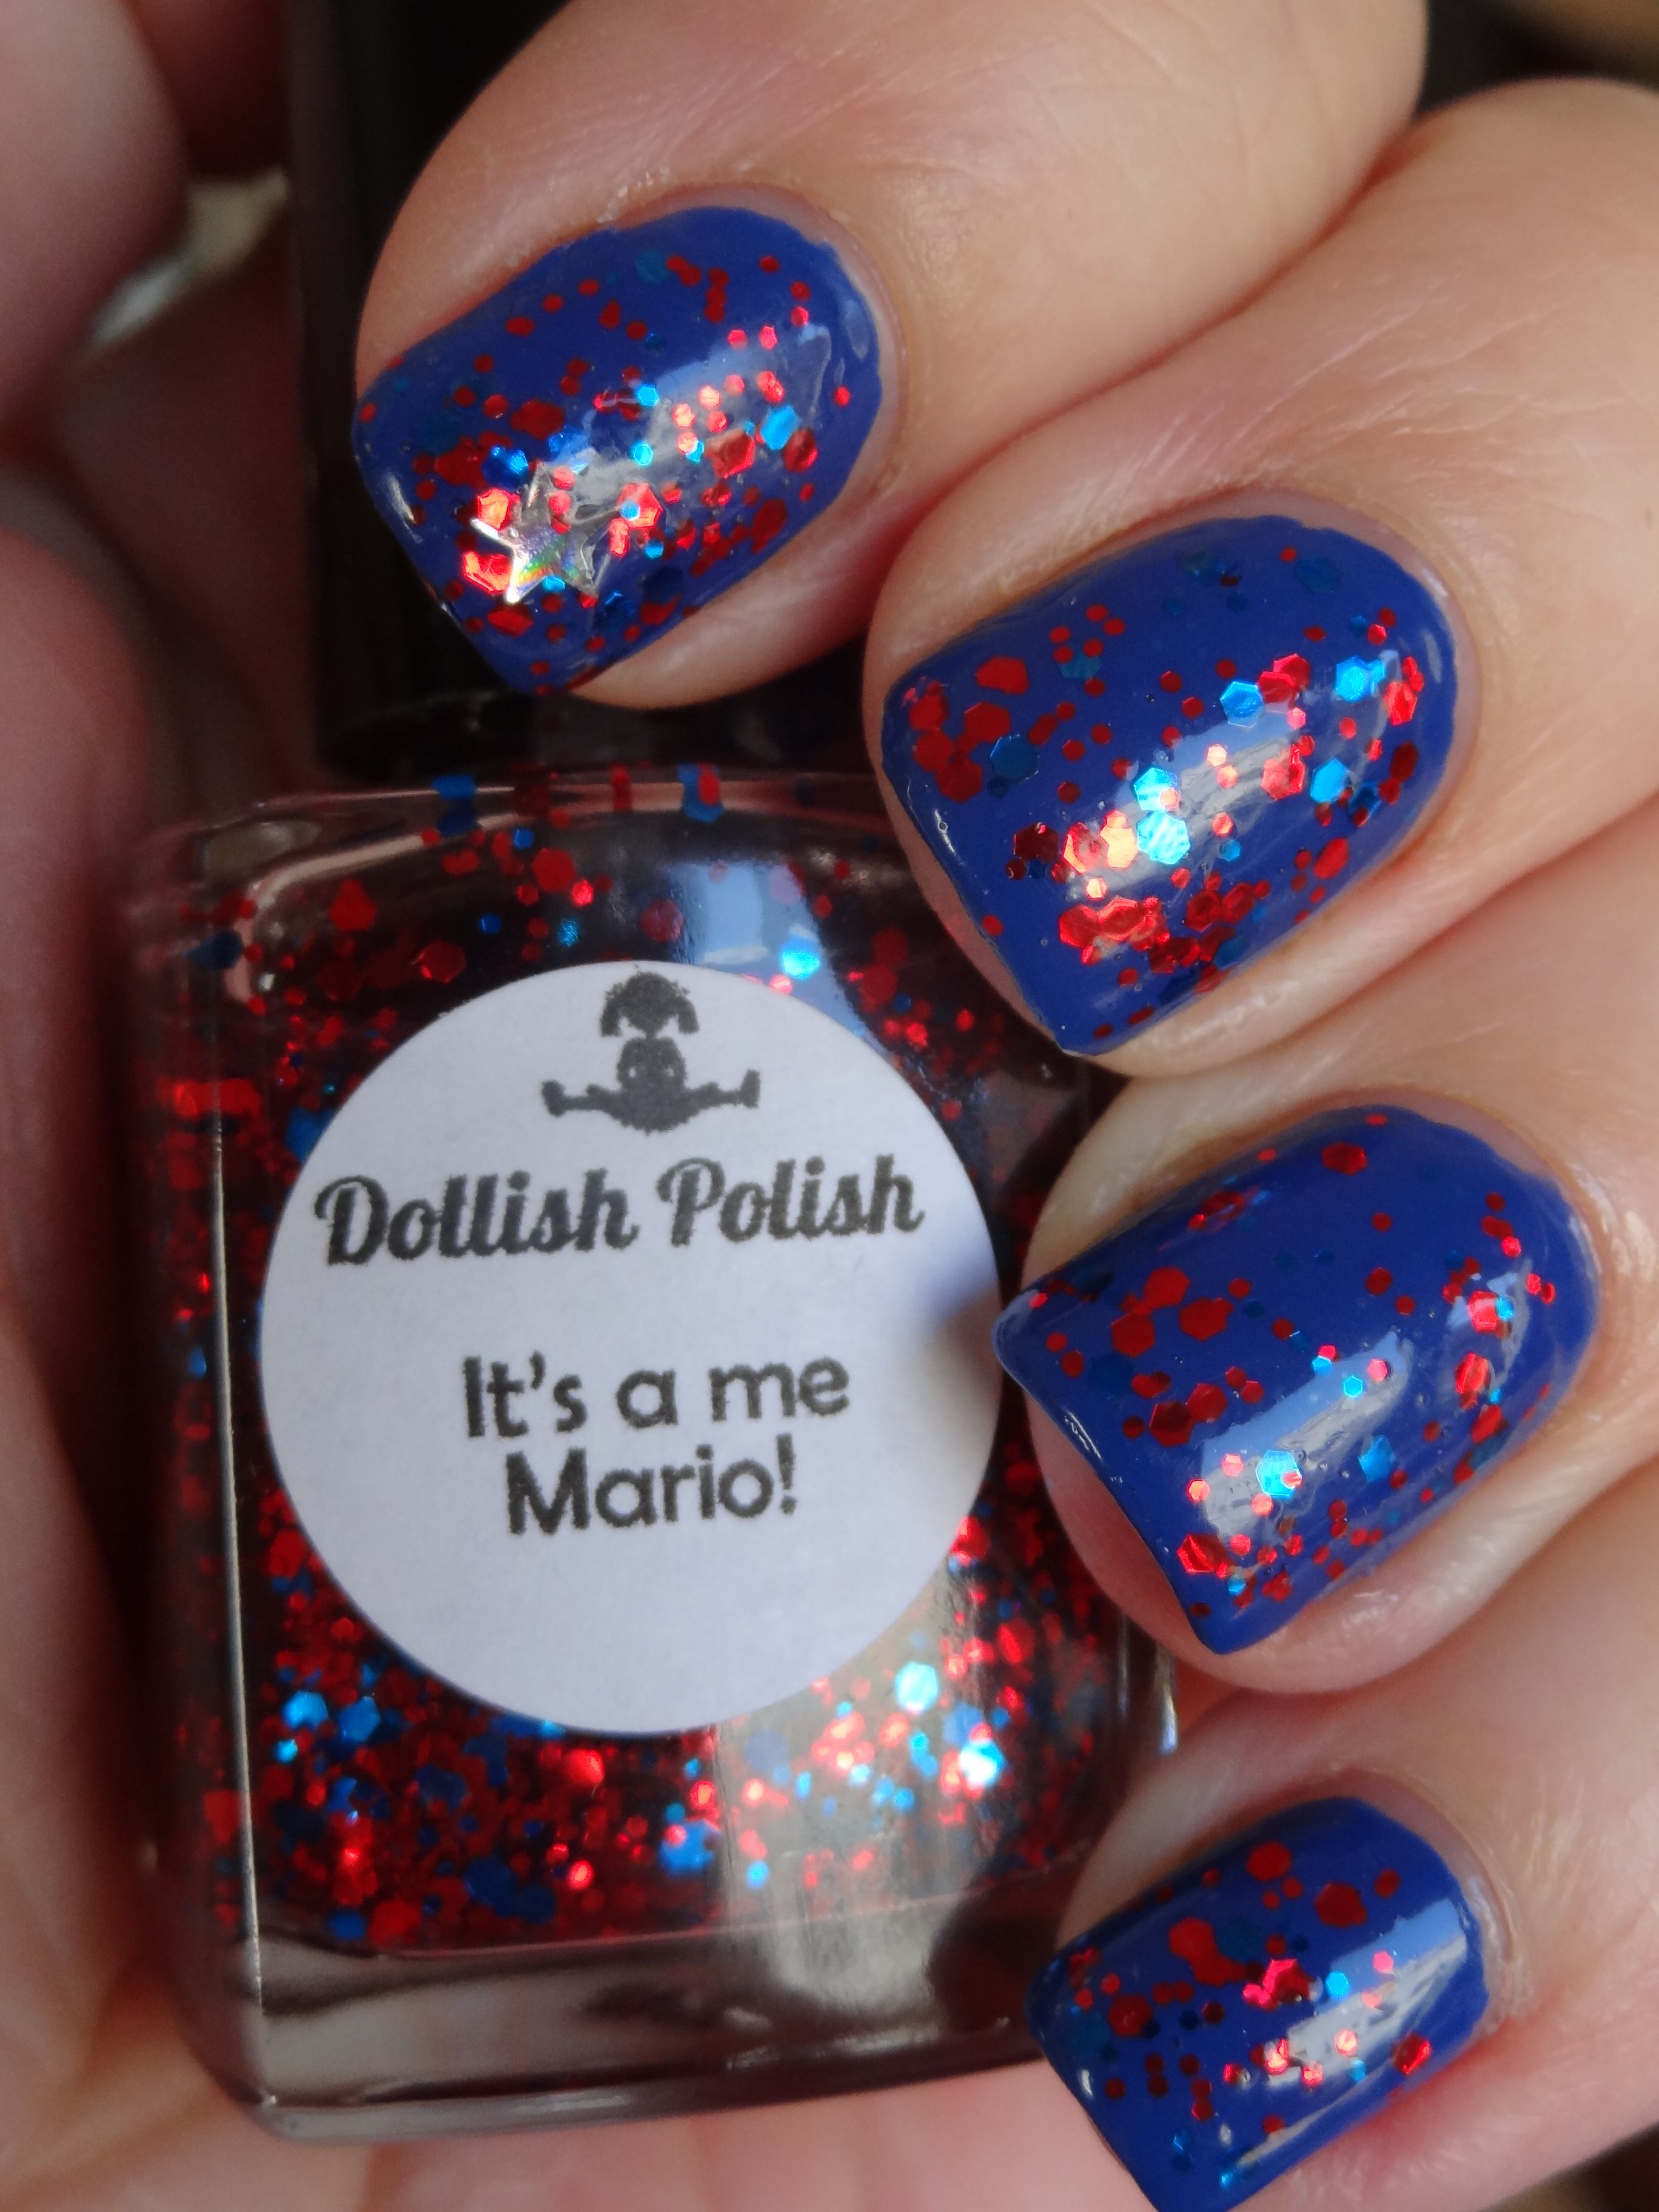 Dollish Polish It's a me Mario over Catrice Pool Party at Night